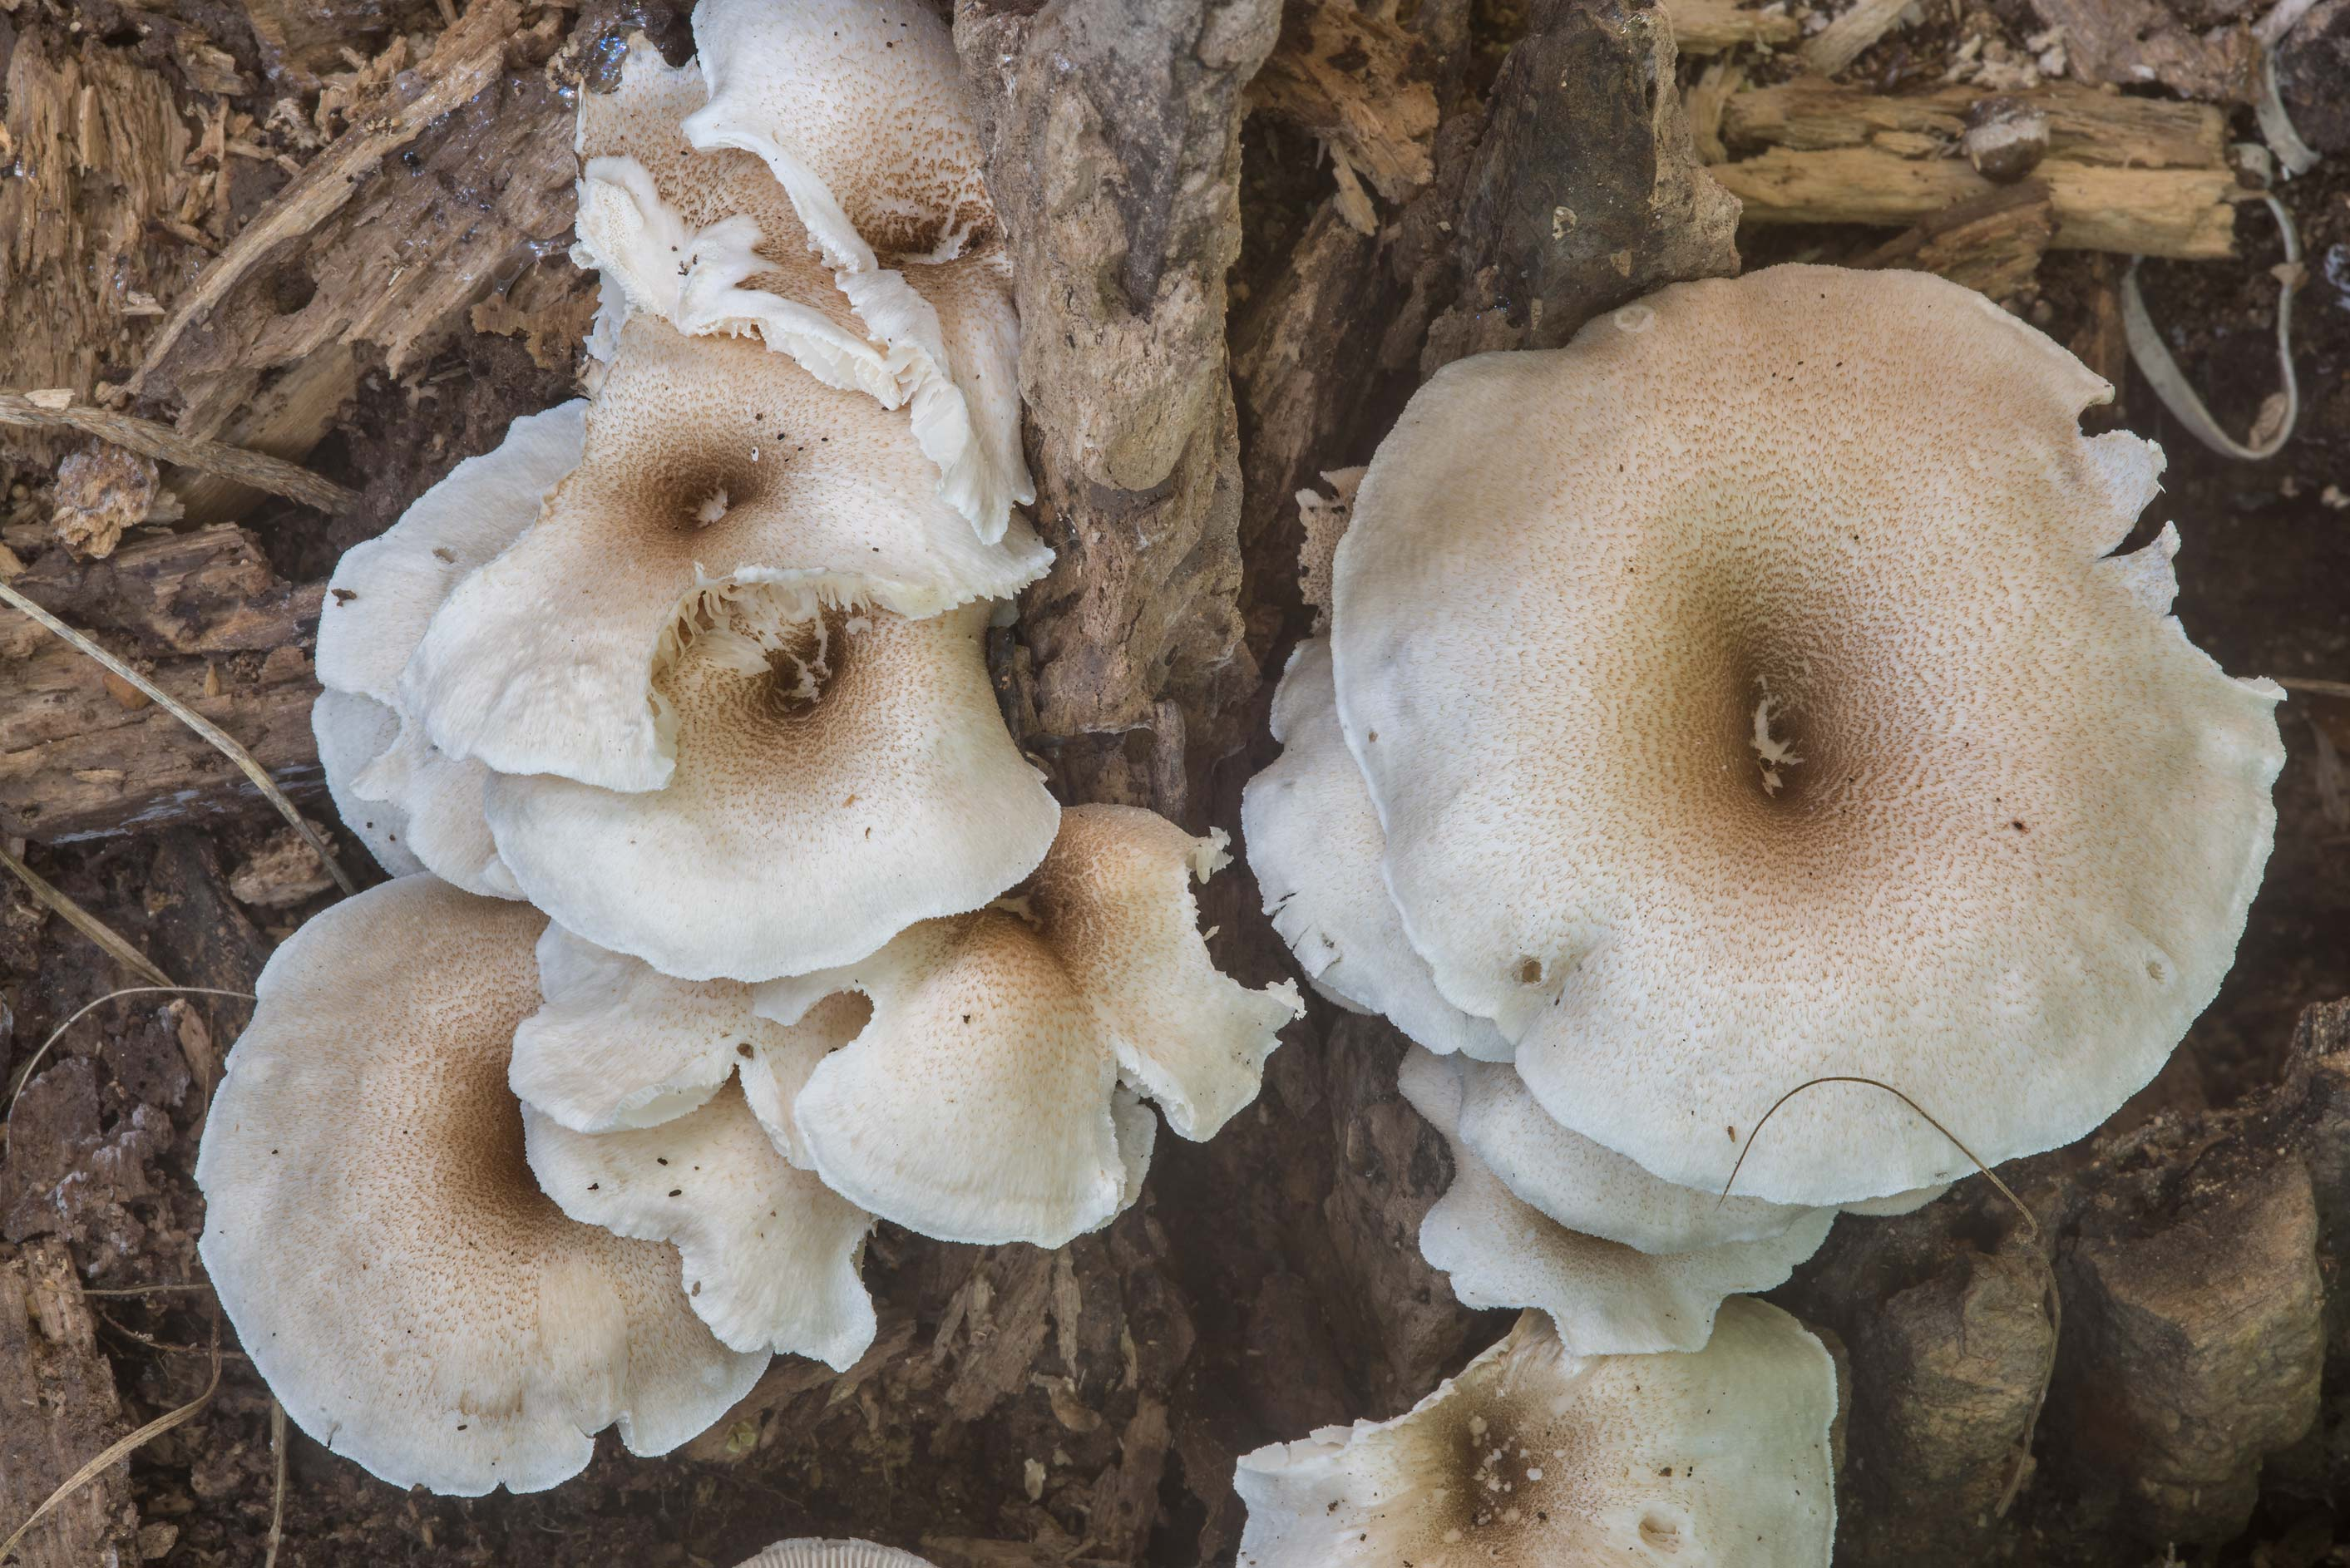 Tiger sawgill mushrooms (Lentinus tigrinus) on a...Creek Park. College Station, Texas